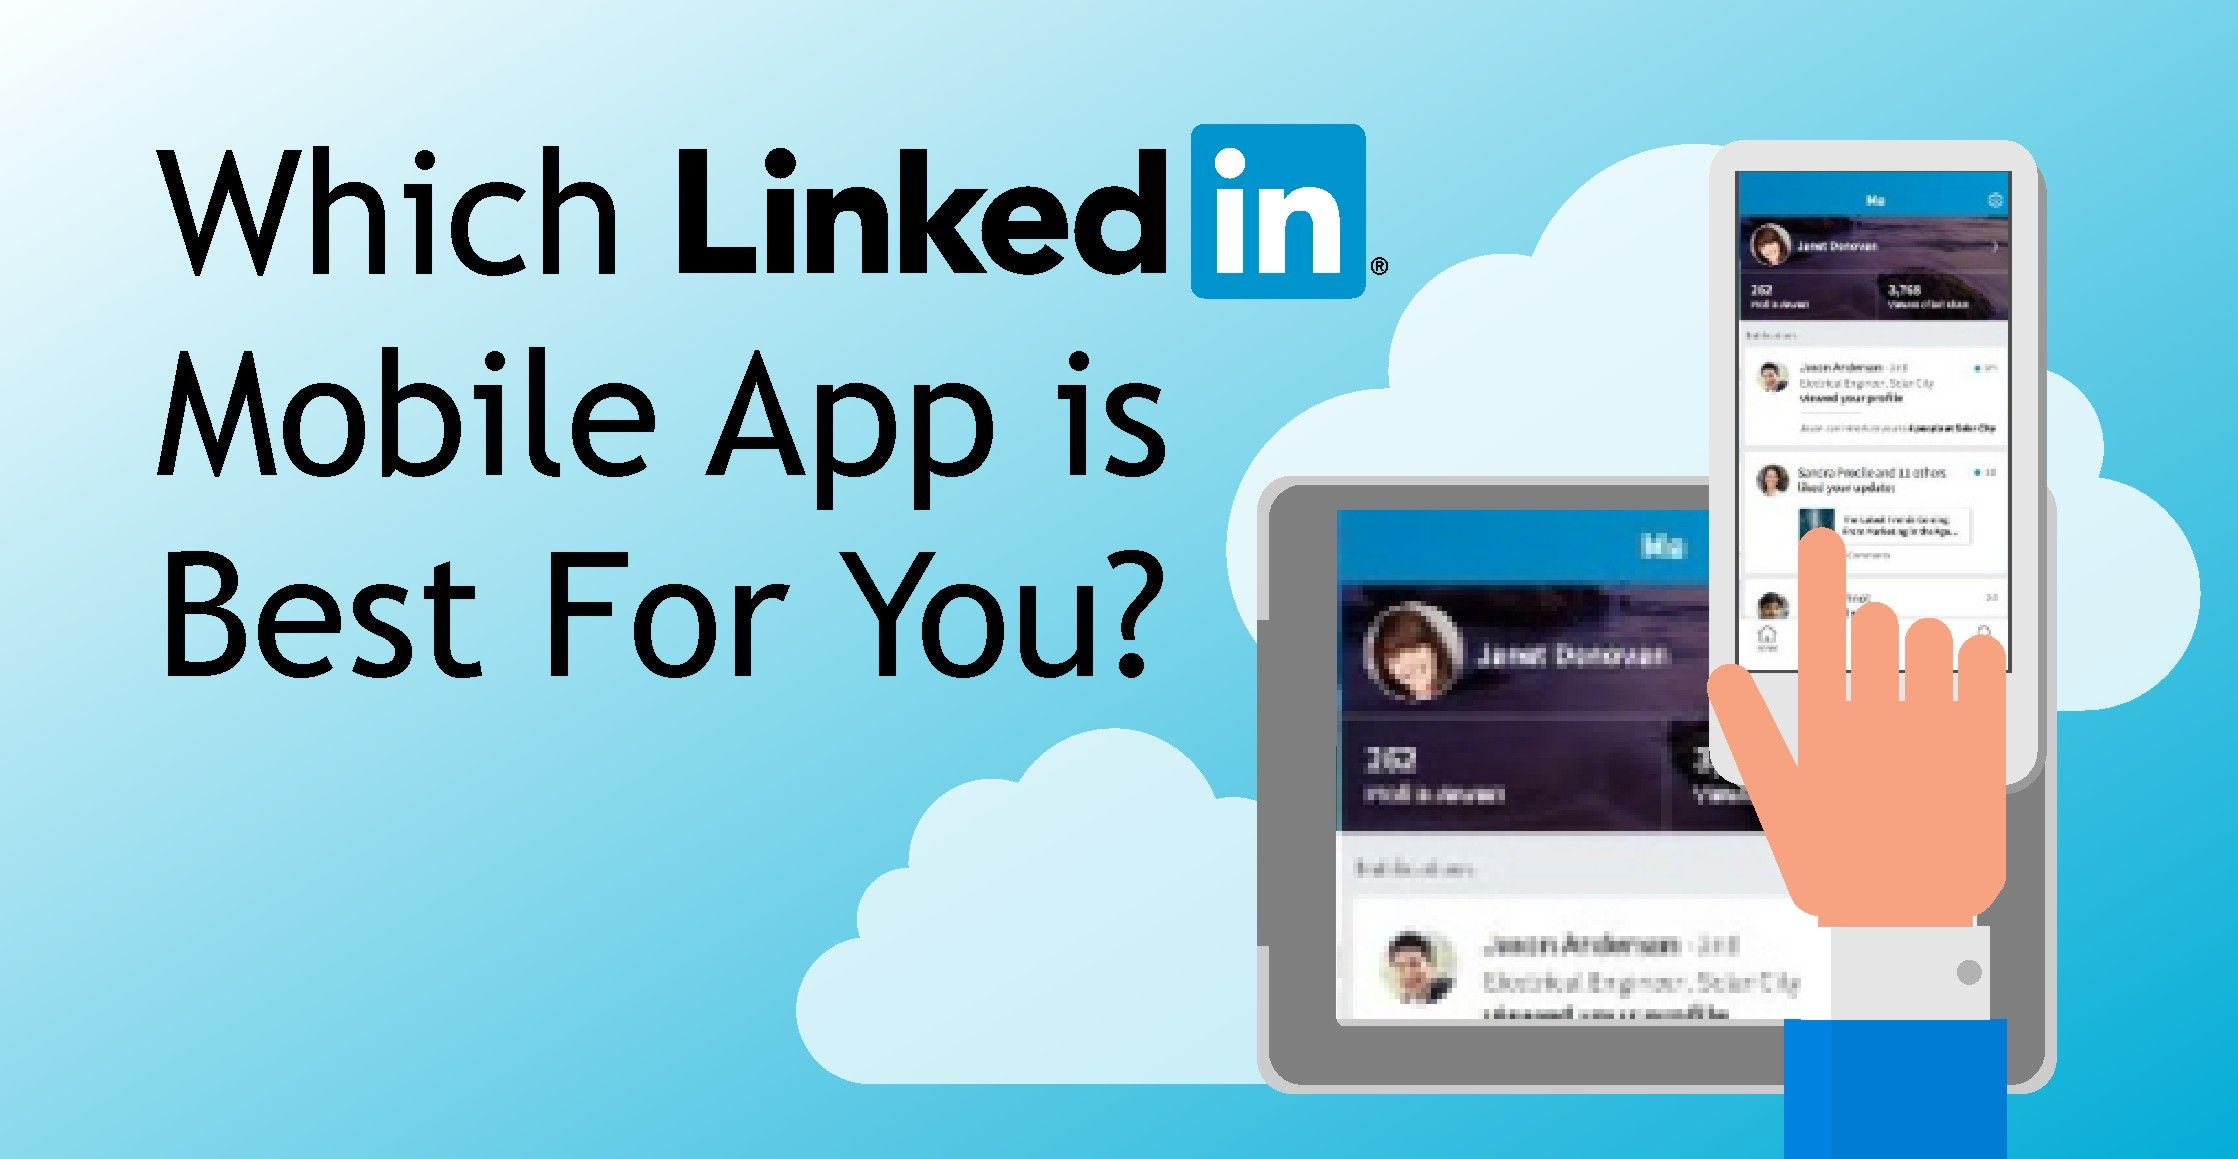 Which LinkedIn Mobile App is Best For You? Mobile app